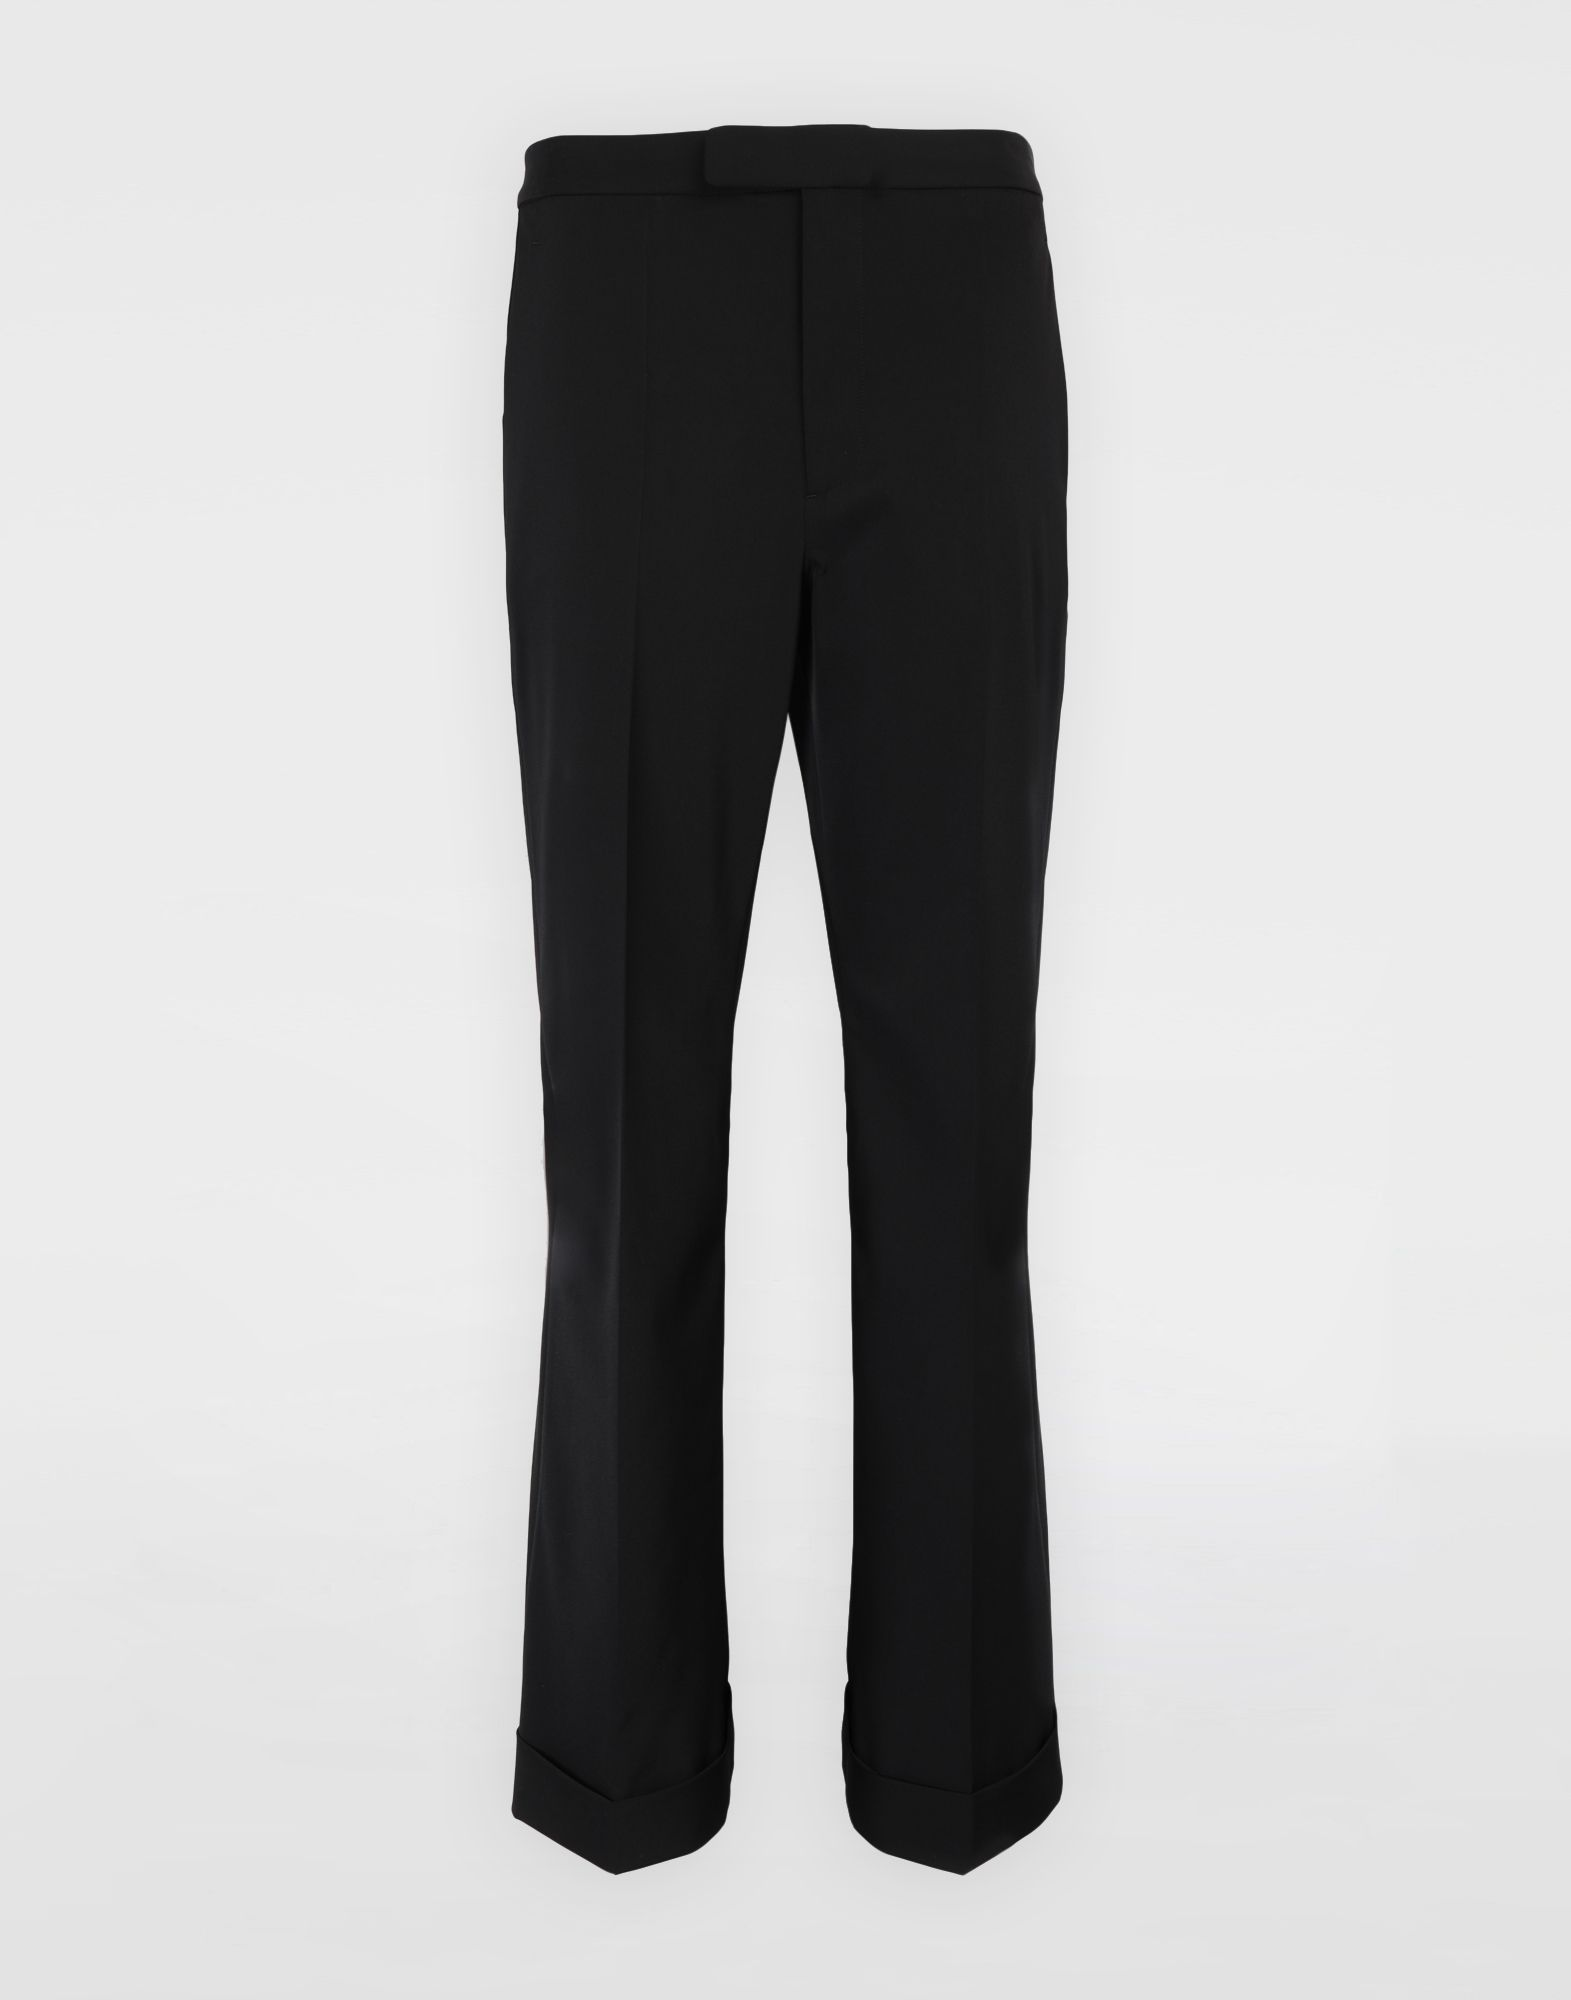 MAISON MARGIELA Straight-leg woven pants Casual pants Woman f